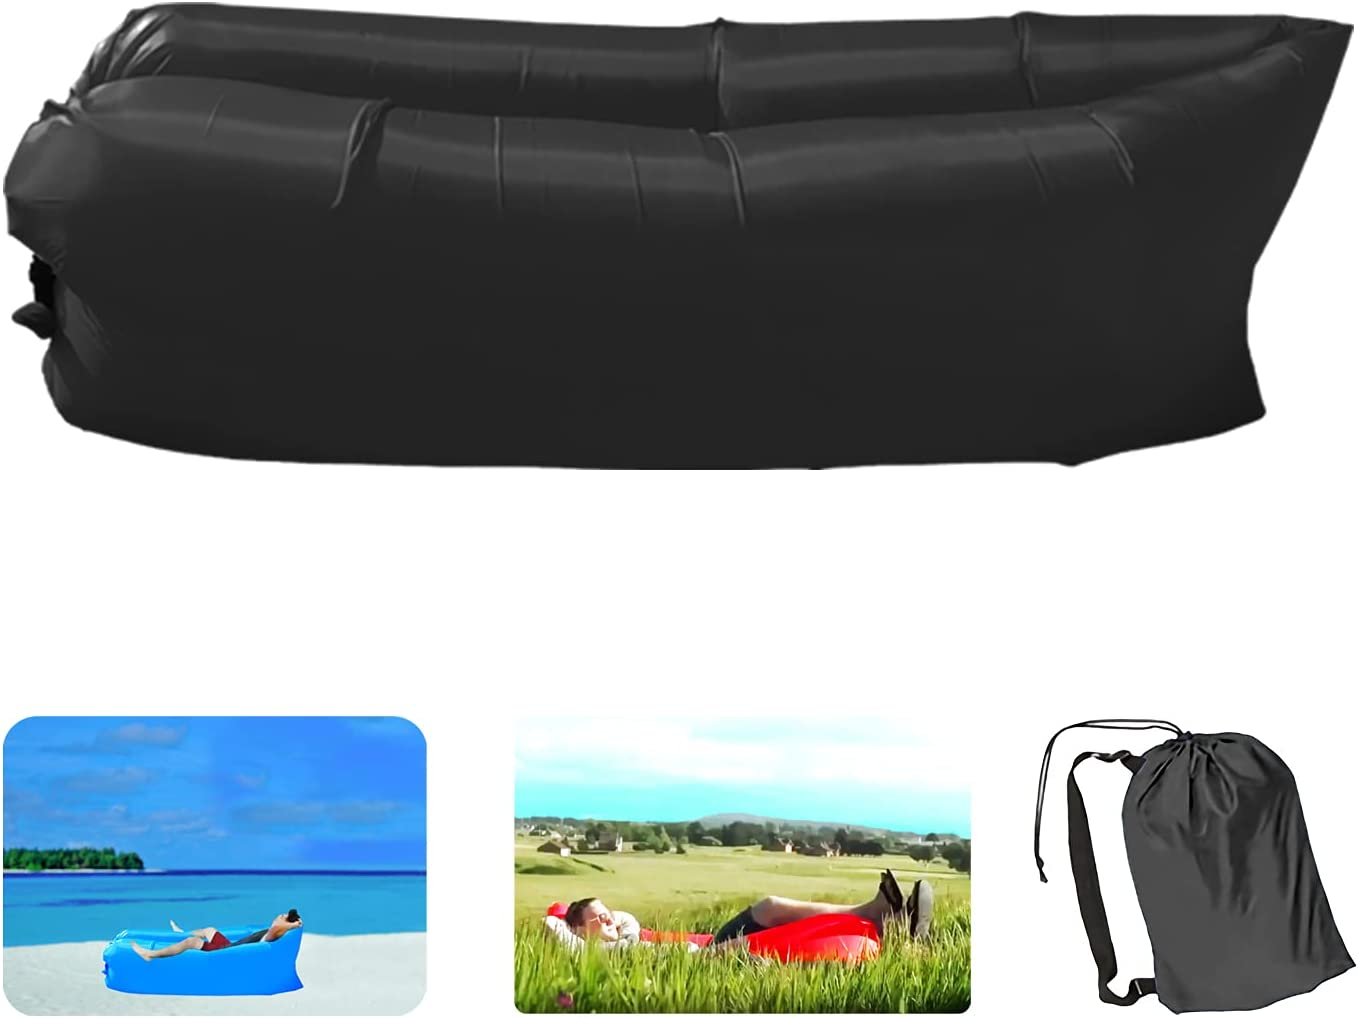 OWTING Inflatable Lounger Tulsa Mall Air Sofa Proof Anti Water Lightweight Max 42% OFF